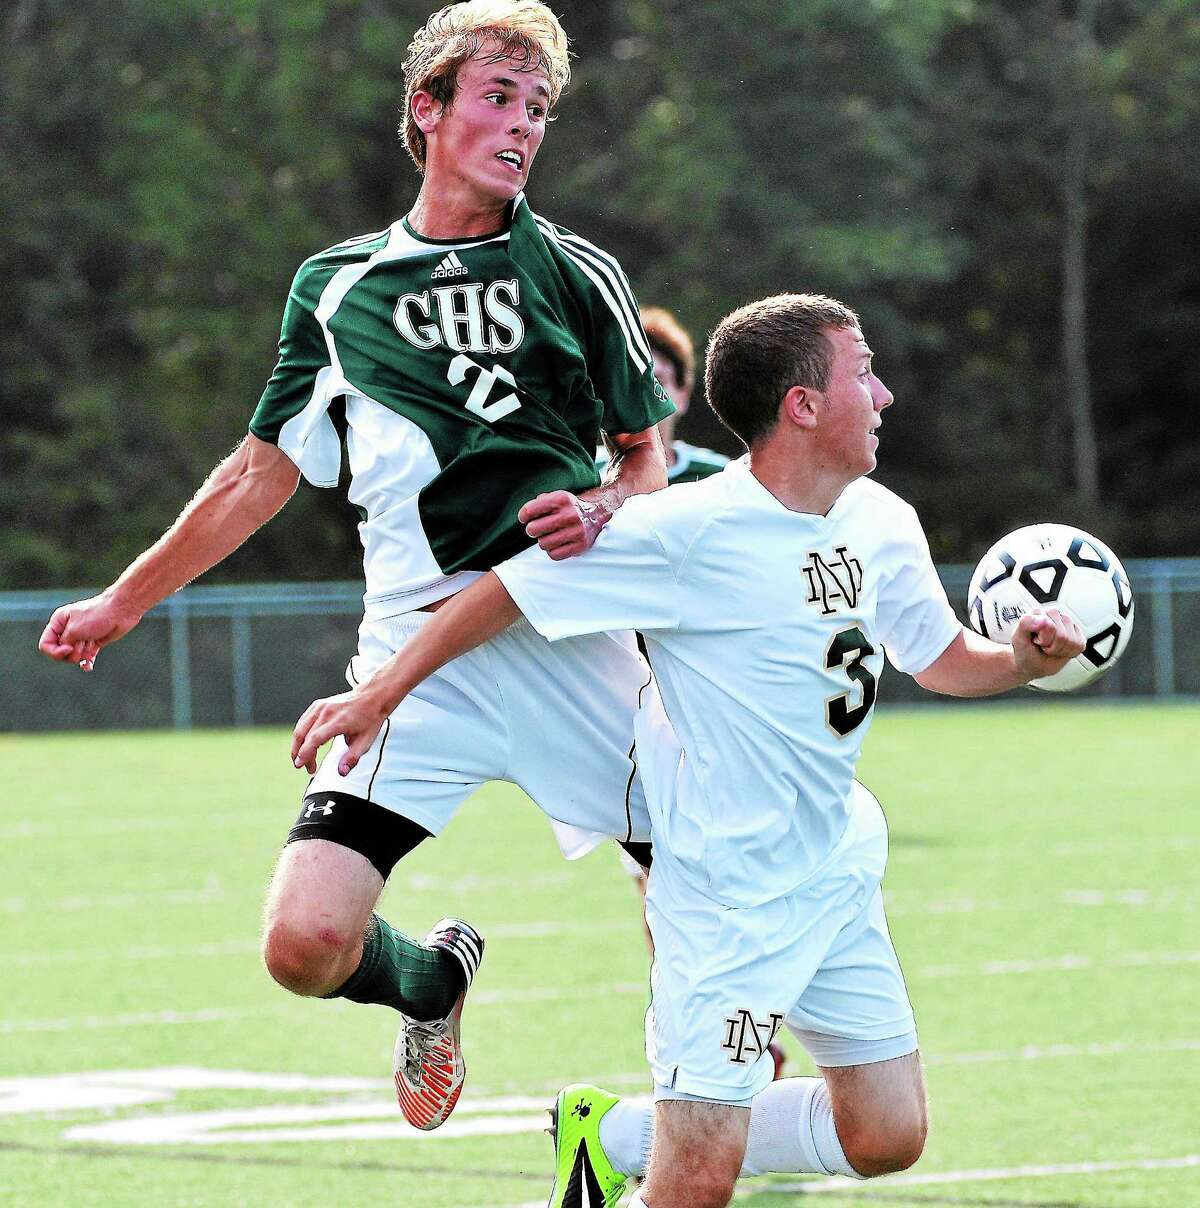 Guilford's Kyle Bianchi gets over Notre Dame-West Haven's Ryan Gannon during the first half of Guilford's 2-0 victory.